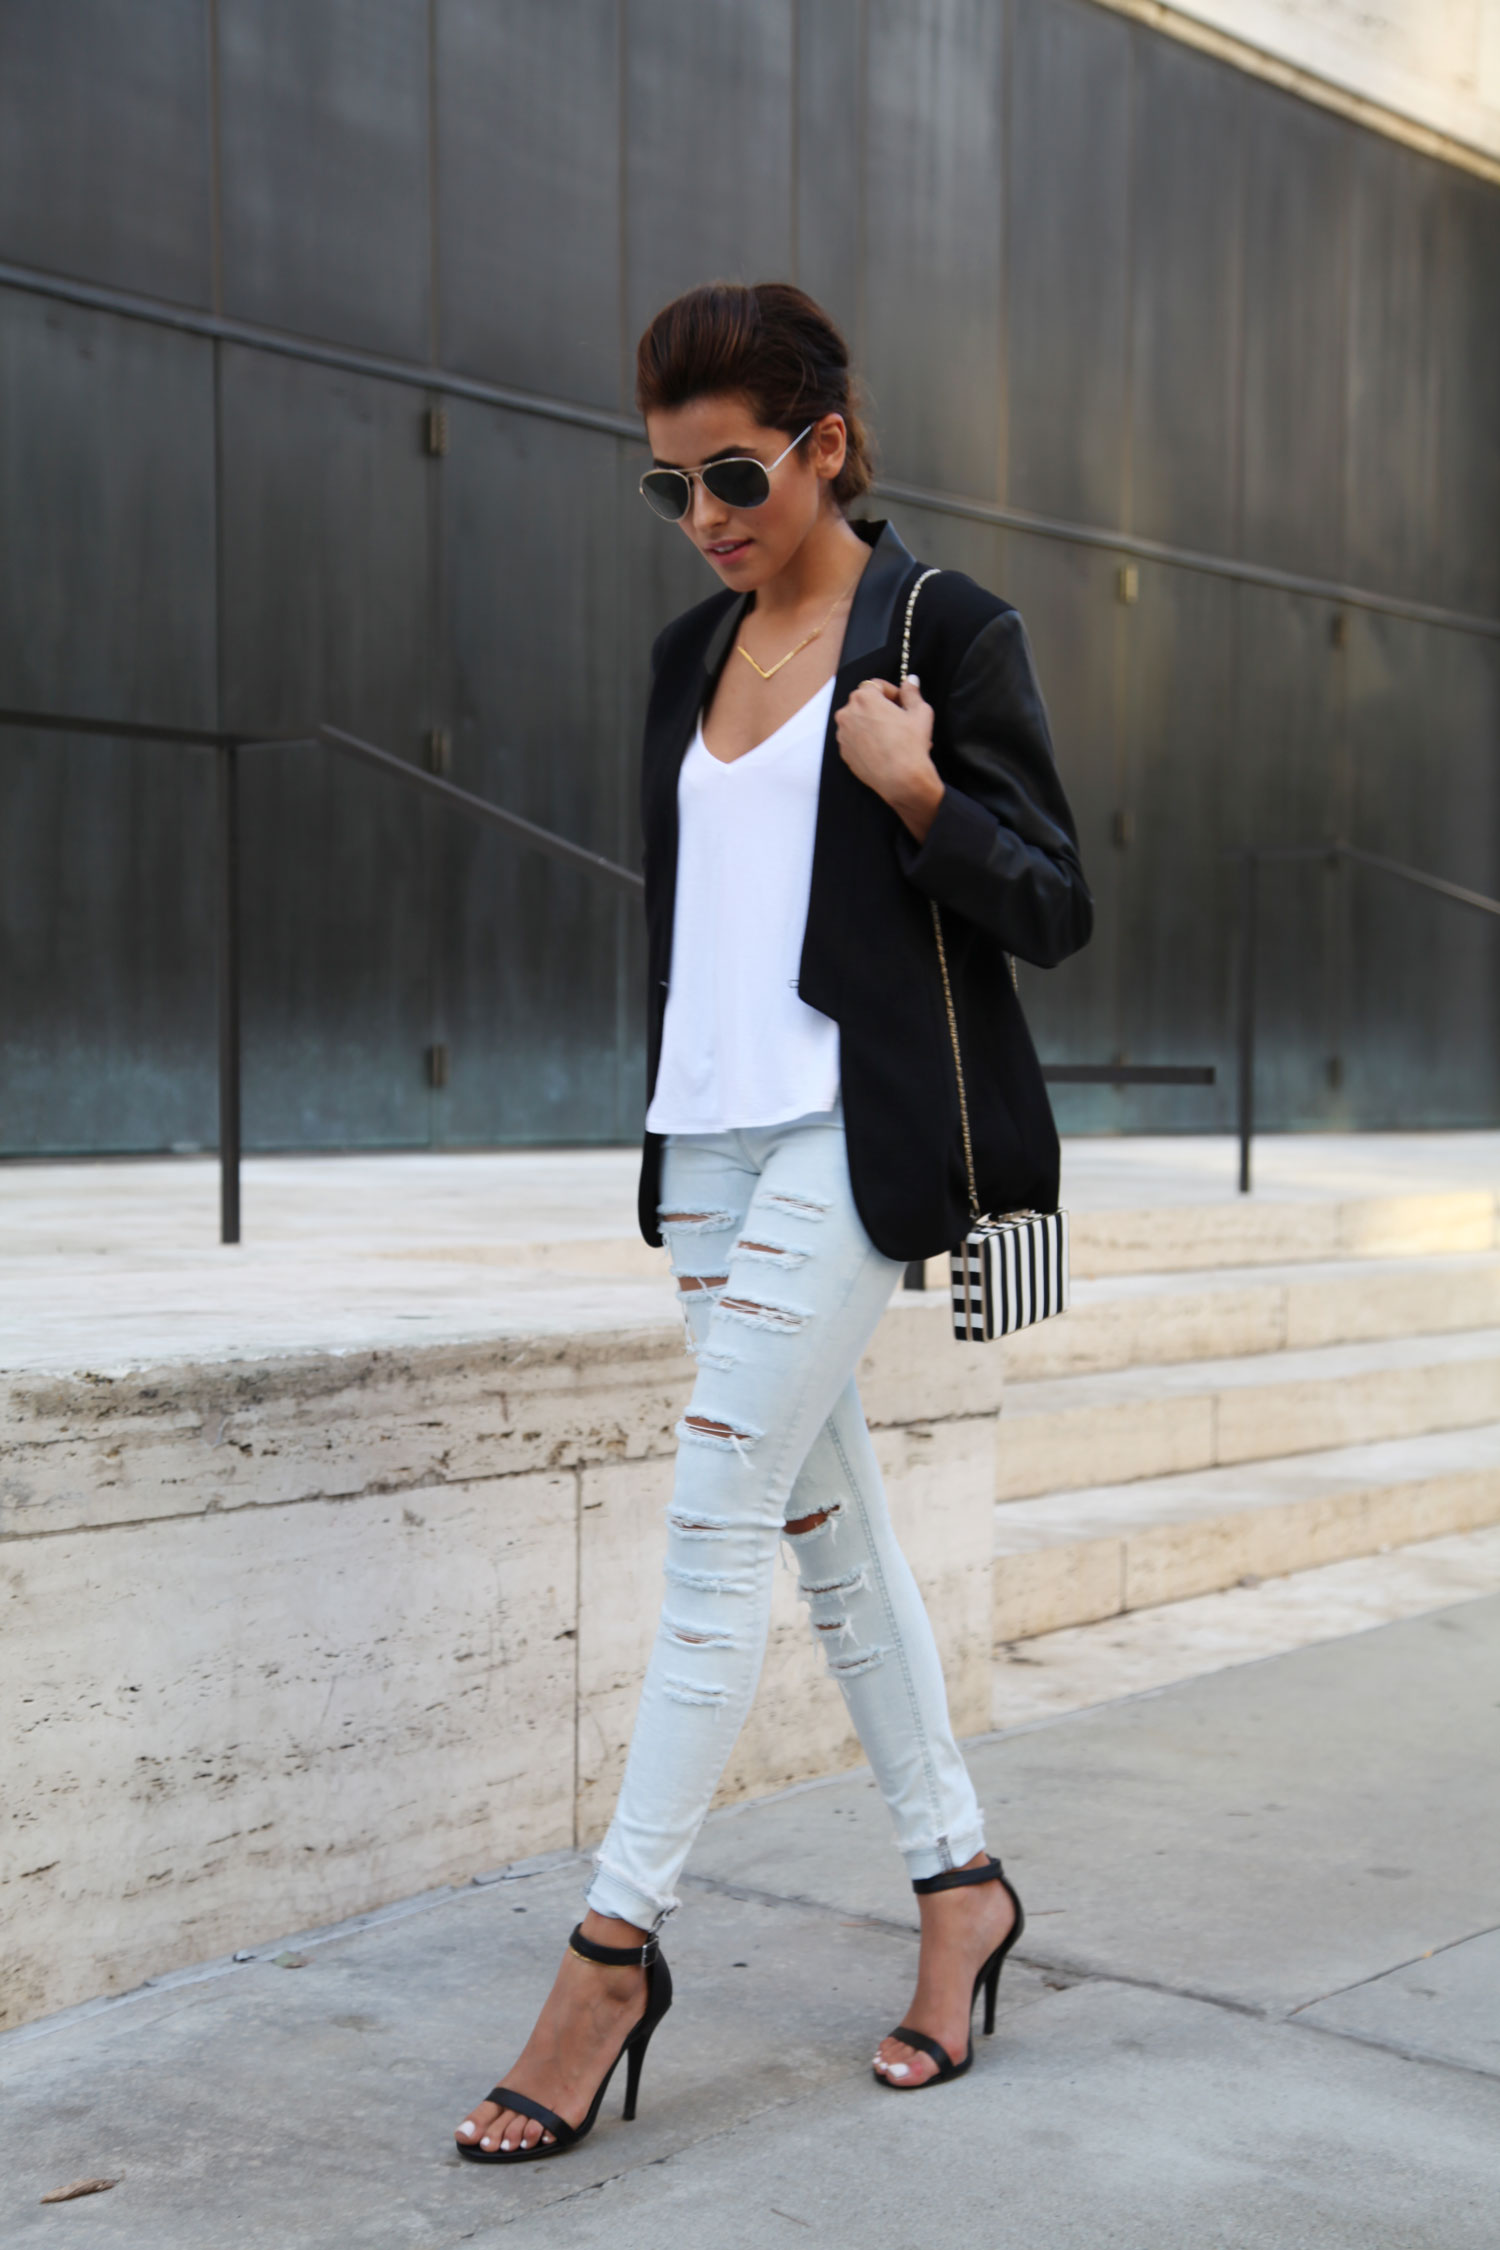 25 Latest Skinny Jeans Fashion Trends for Summer 2015/16